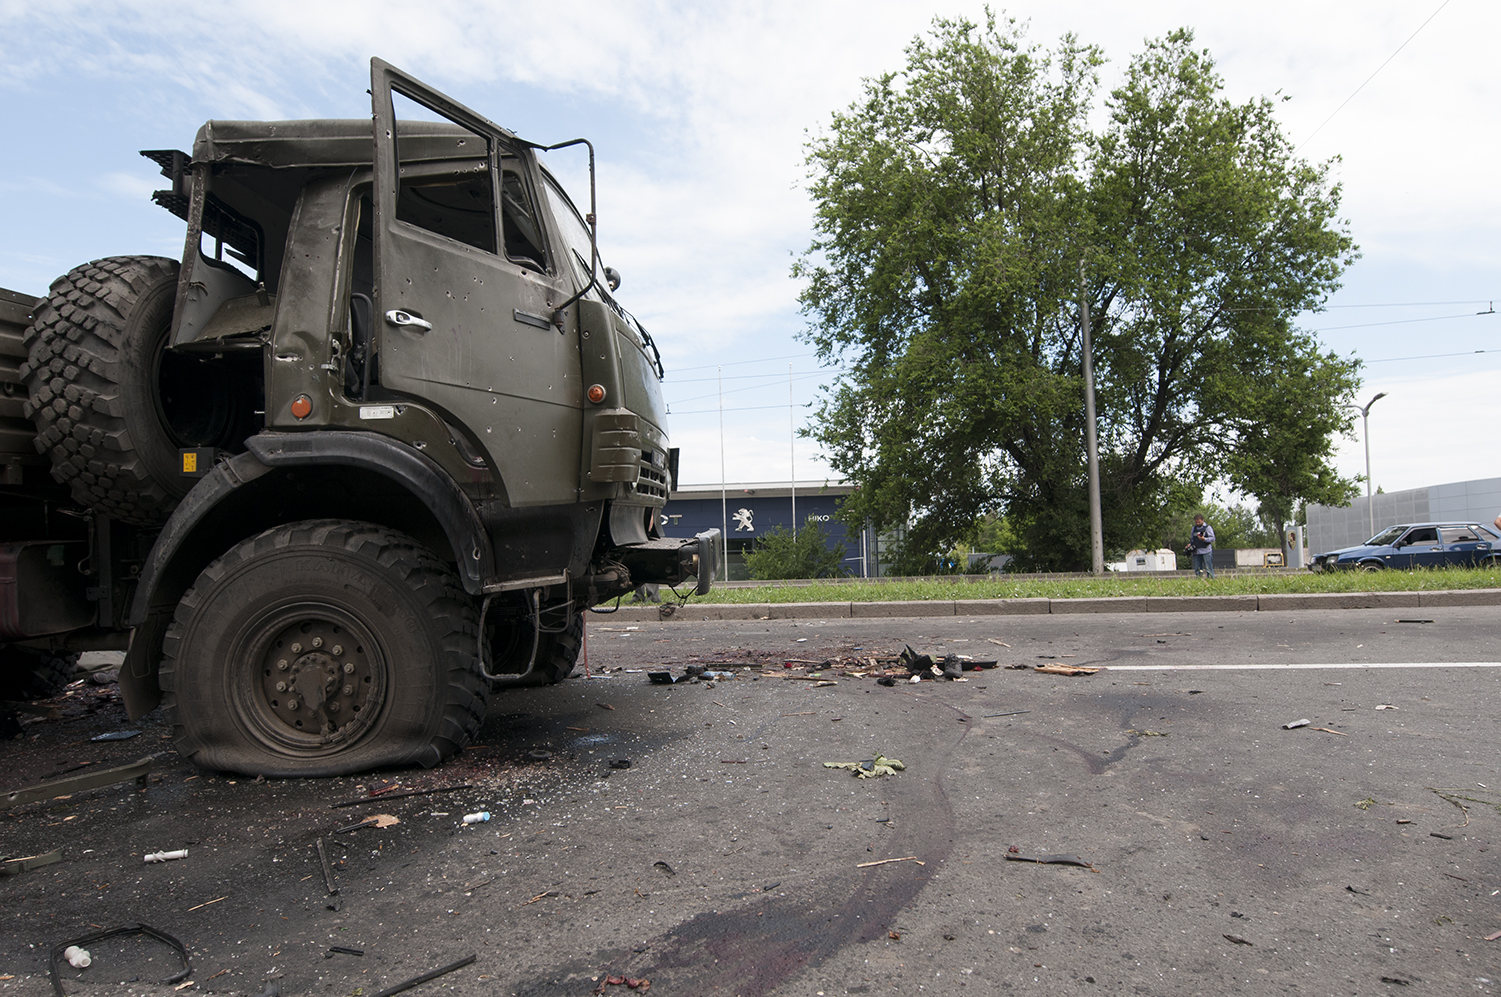 Blood stains next to a truck belonging to the Donetsk people's Republic Army